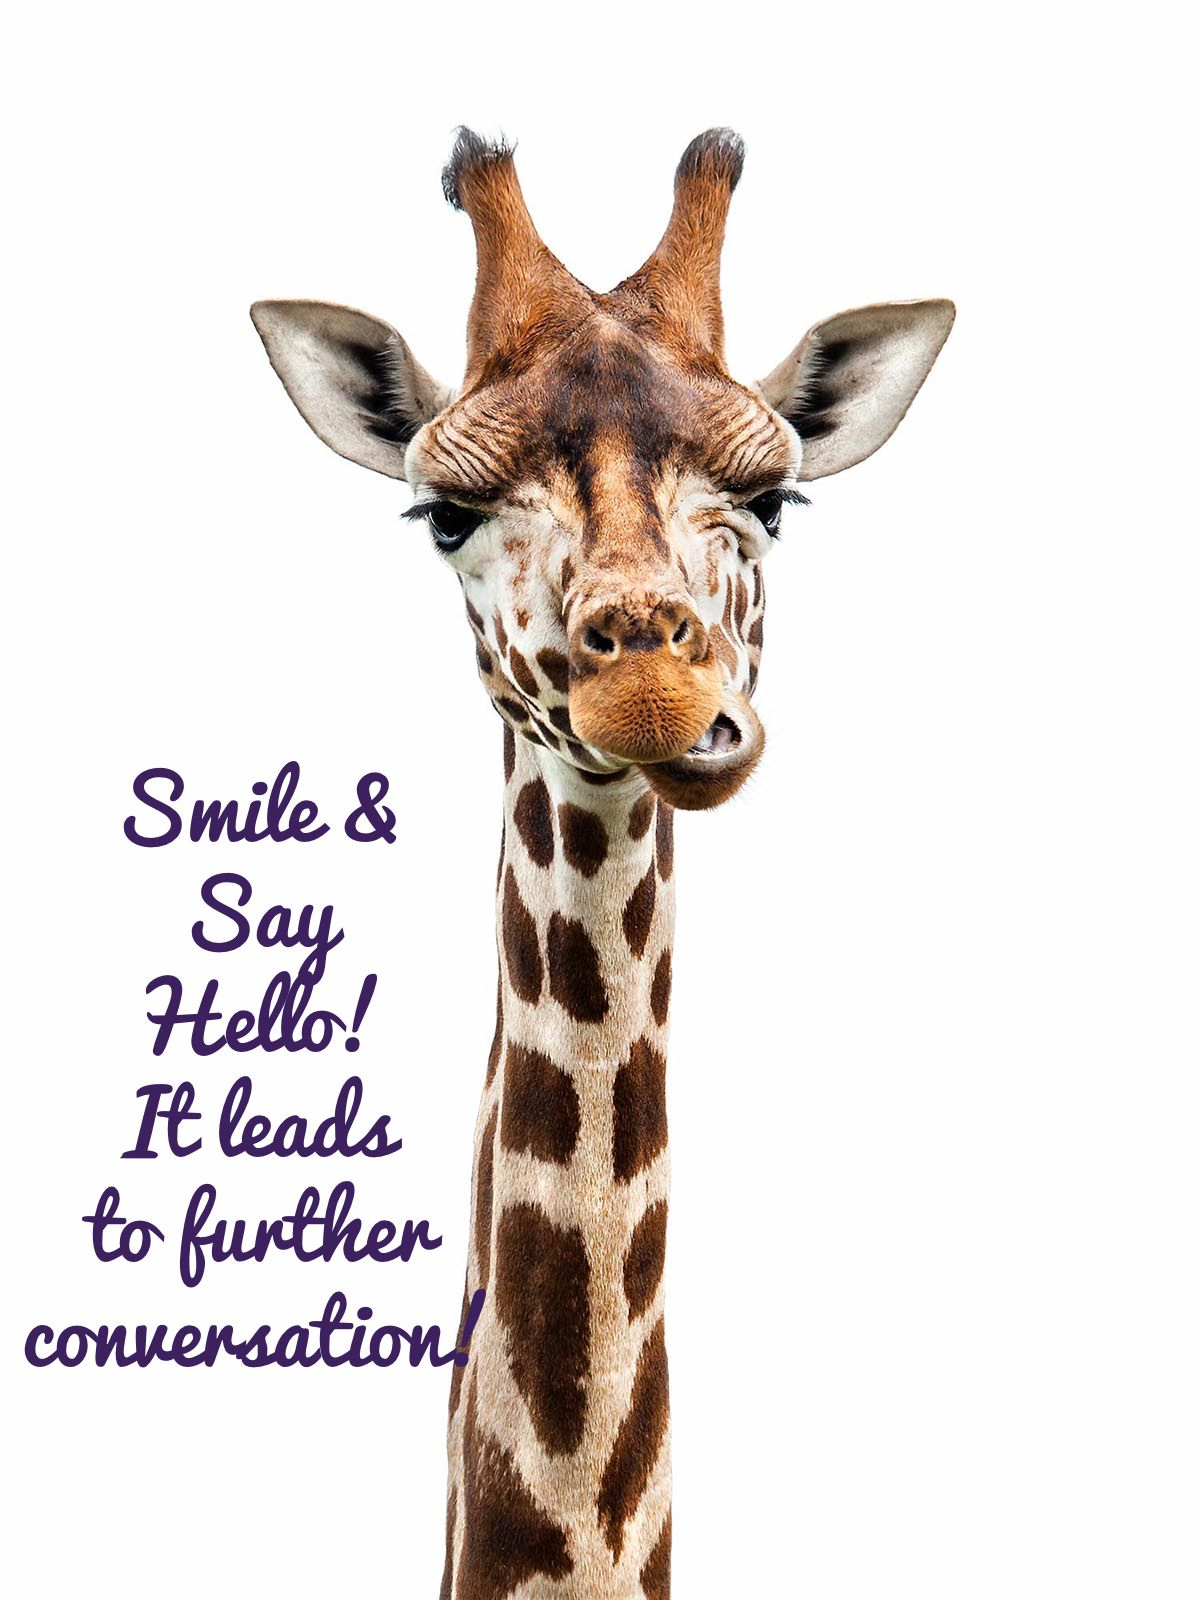 Cute Giraffe Quotes Pinterest thumbnail